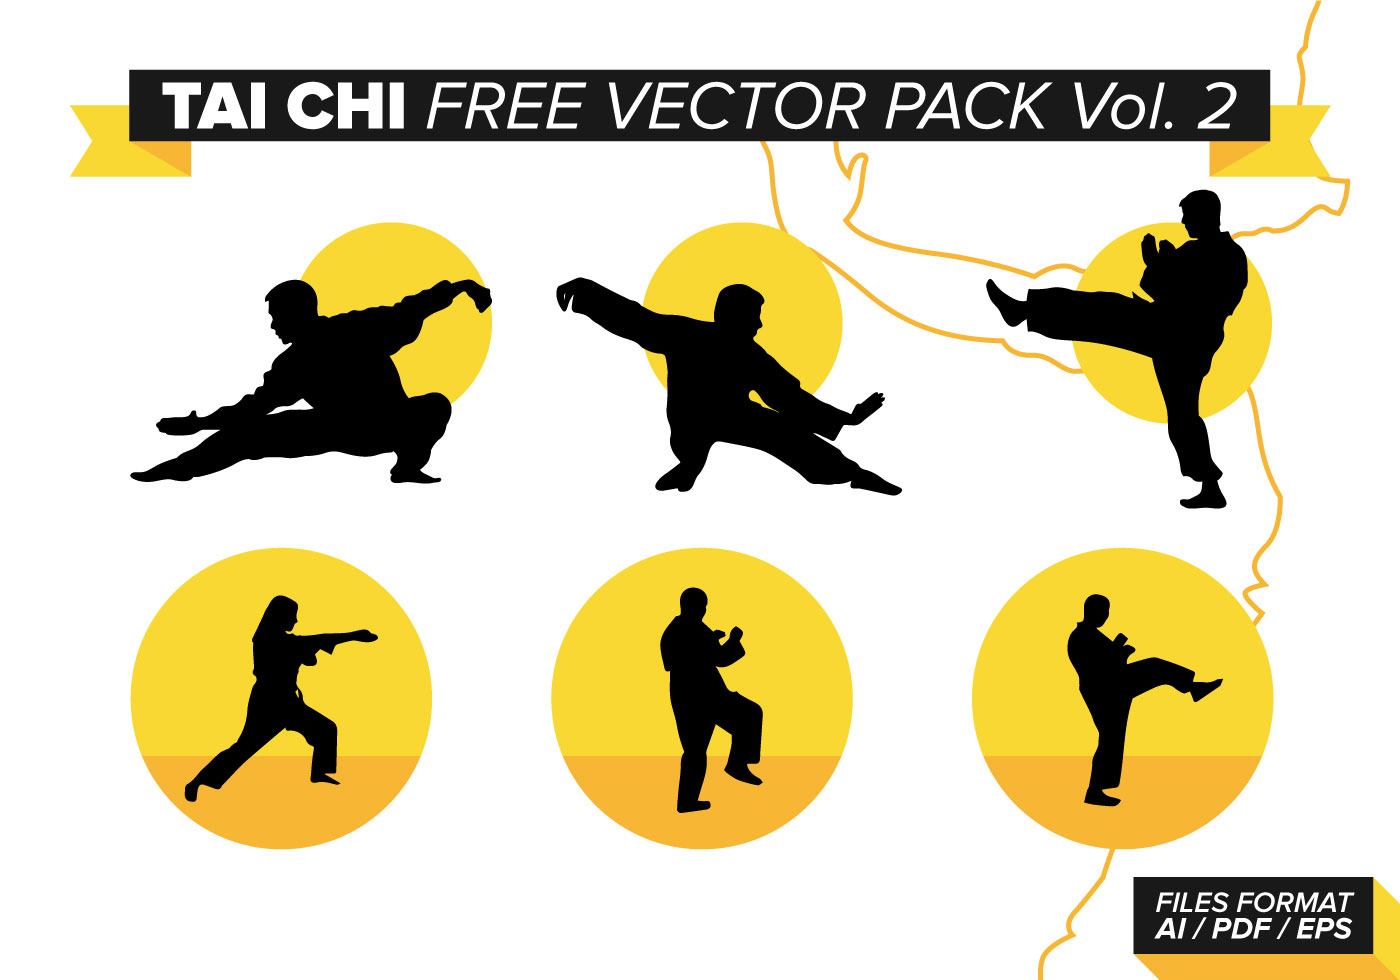 Tai chi Pictures Images & Photos